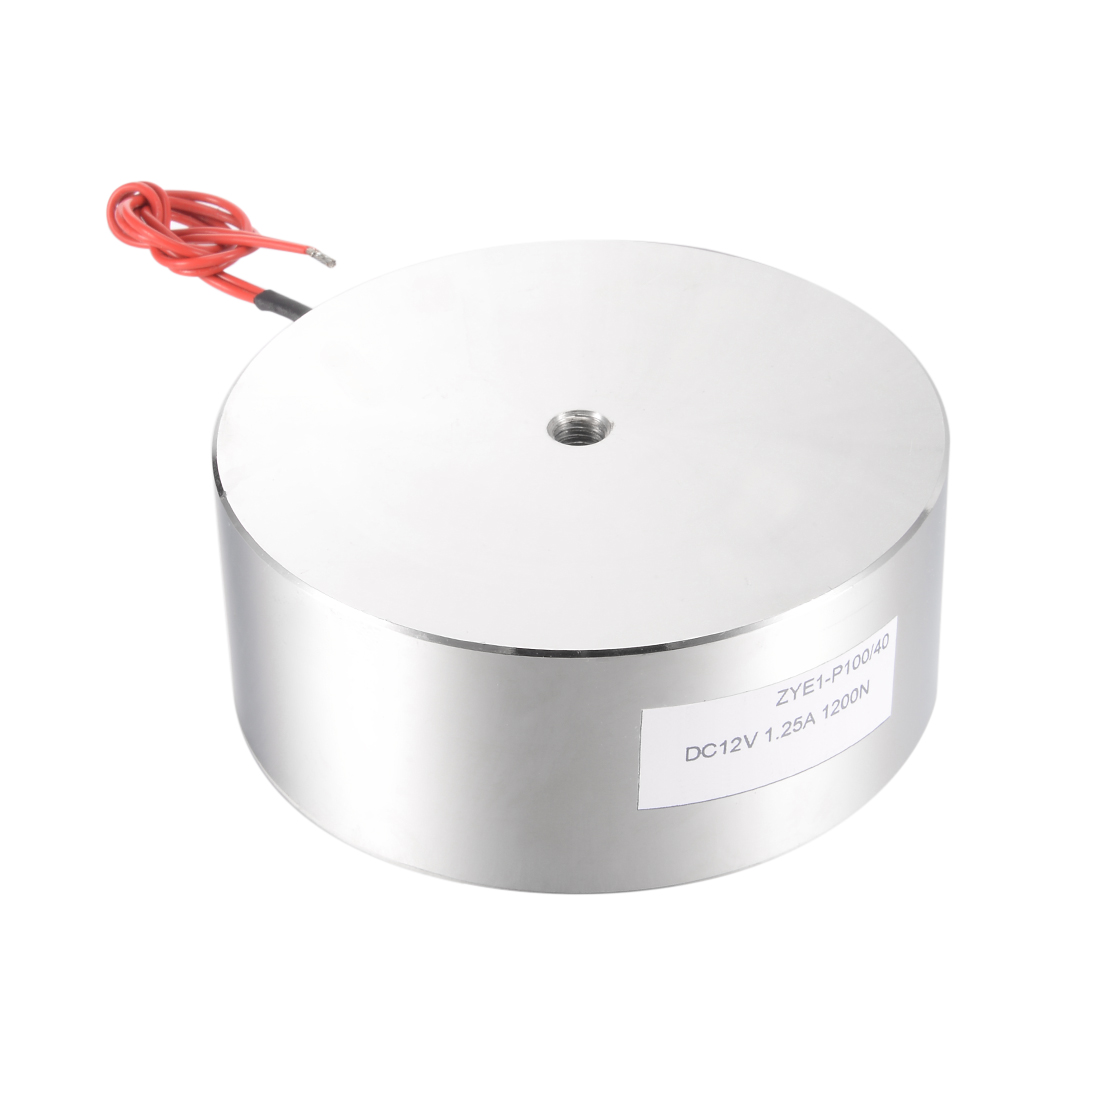 Uxcell 100mm X 40mm DC12V 1.25A 1200N Sucking Disc Solenoid Lift Holding Electromagnet